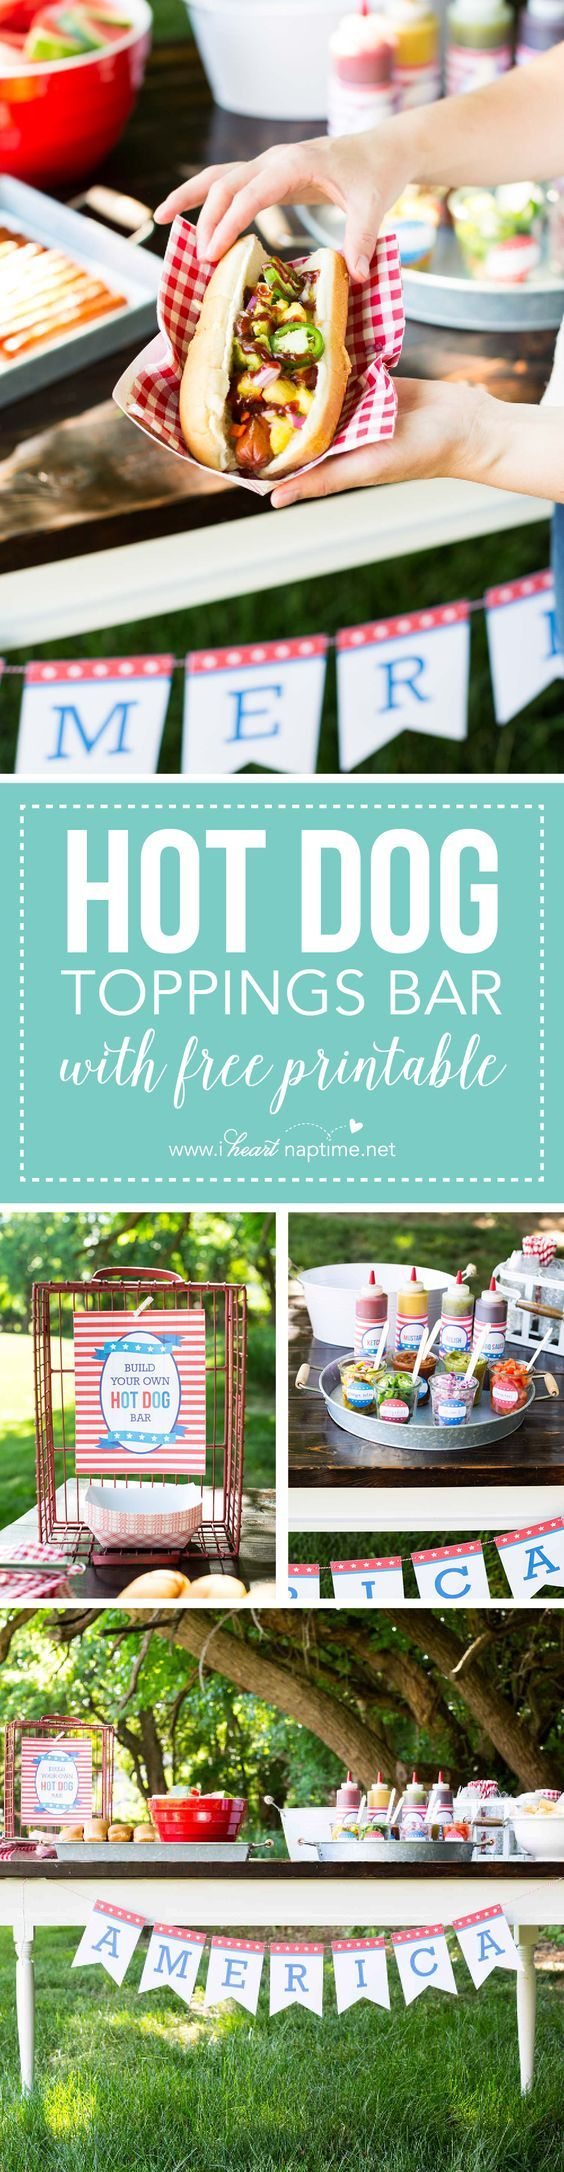 Baseball party. Hot Dog Toppings Bar for the 4th of July ...the perfect way to celebrate with friends and family.